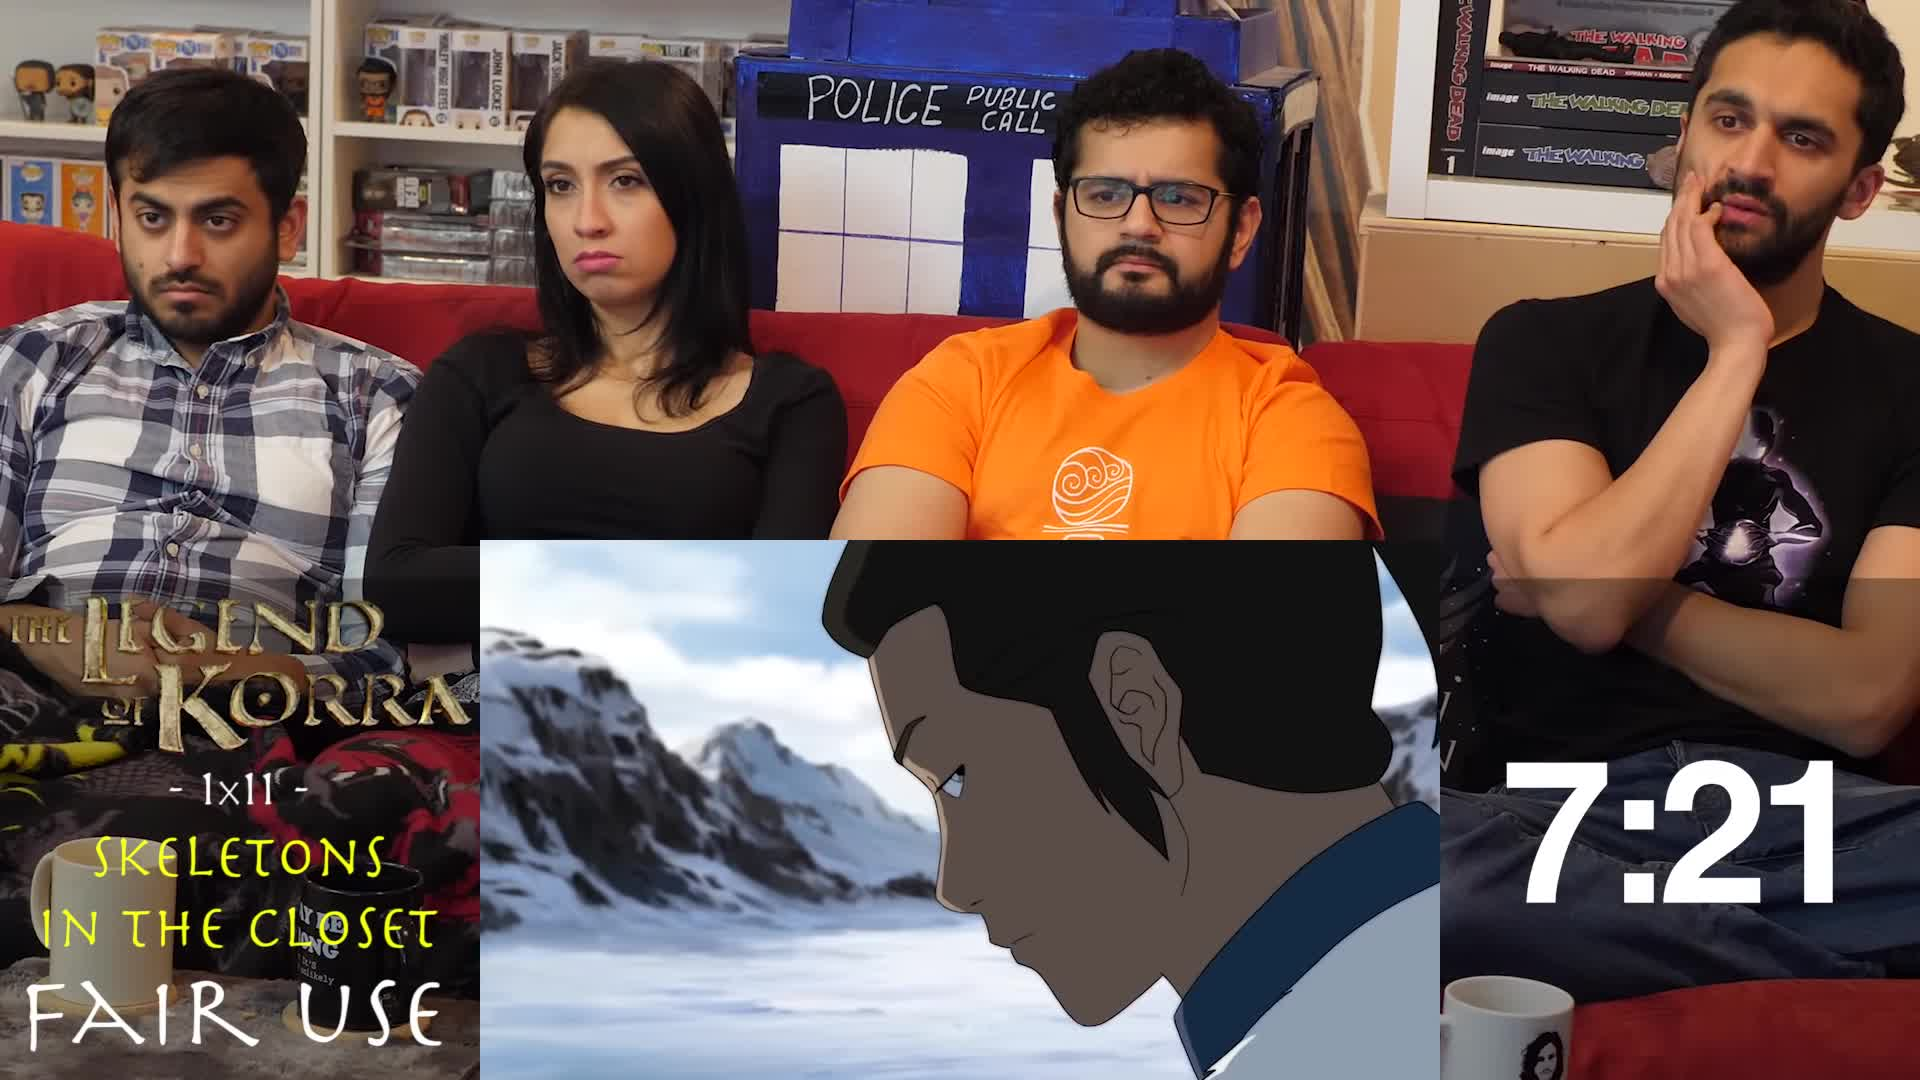 The Legend Of Korra 1x11 Skeletons In The Closet Group Reaction Gif